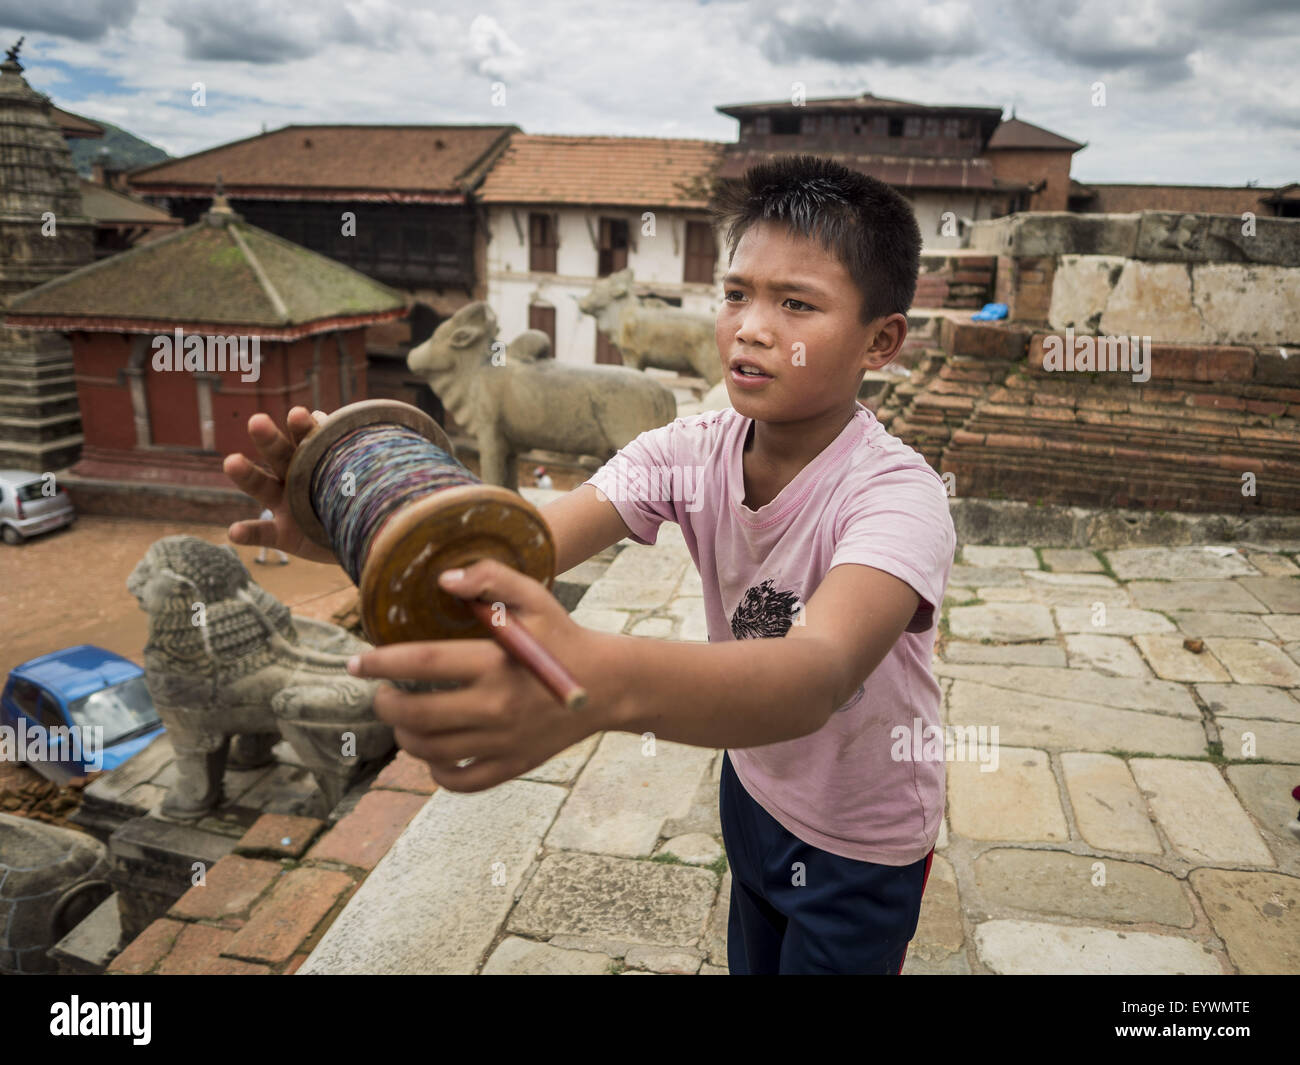 Bhaktapur, Central Region, Nepal. 2nd Aug, 2015. A boy flies his kite from the top of a temple destroyed by the - Stock Image